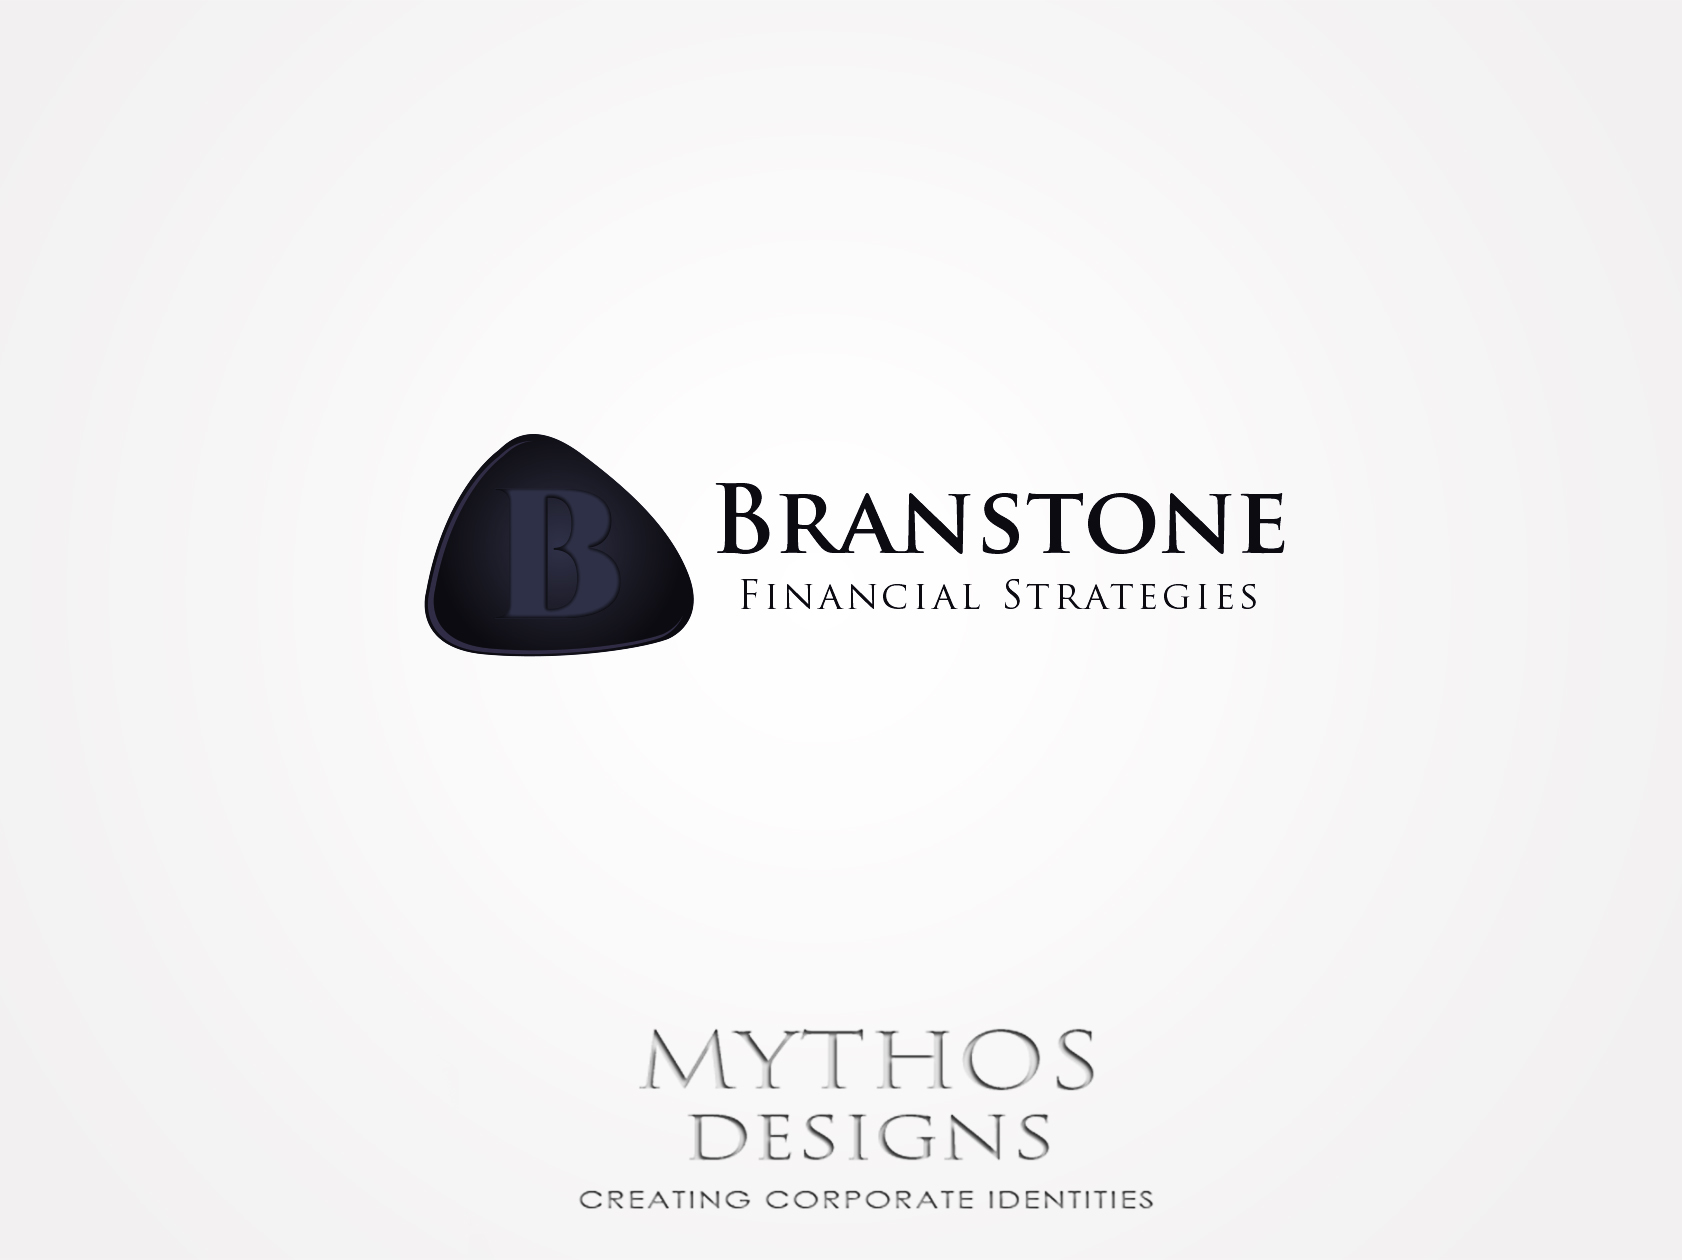 Logo Design by Mythos Designs - Entry No. 16 in the Logo Design Contest Inspiring Logo Design for Branstone Financial Strategies.